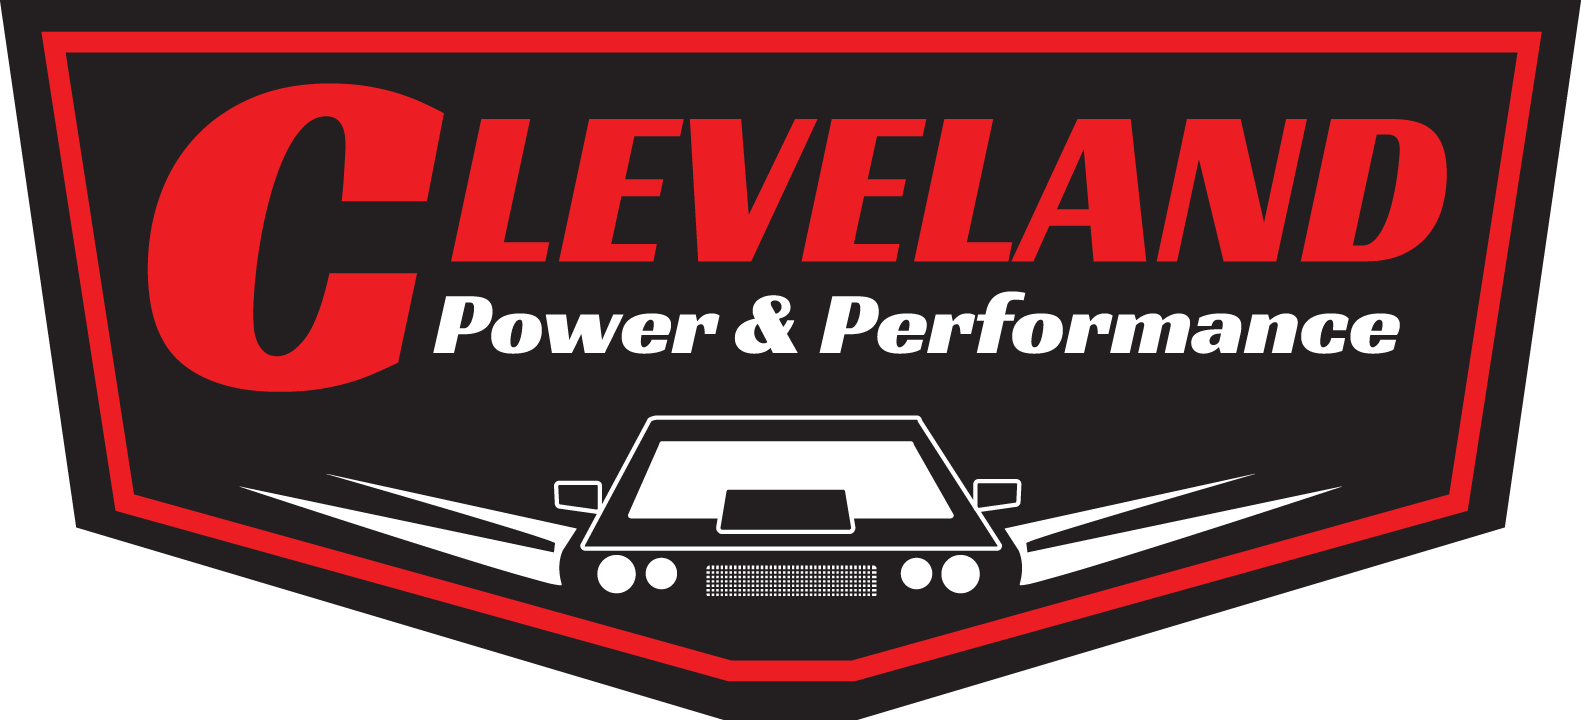 Cleveland Power & Performance Badge